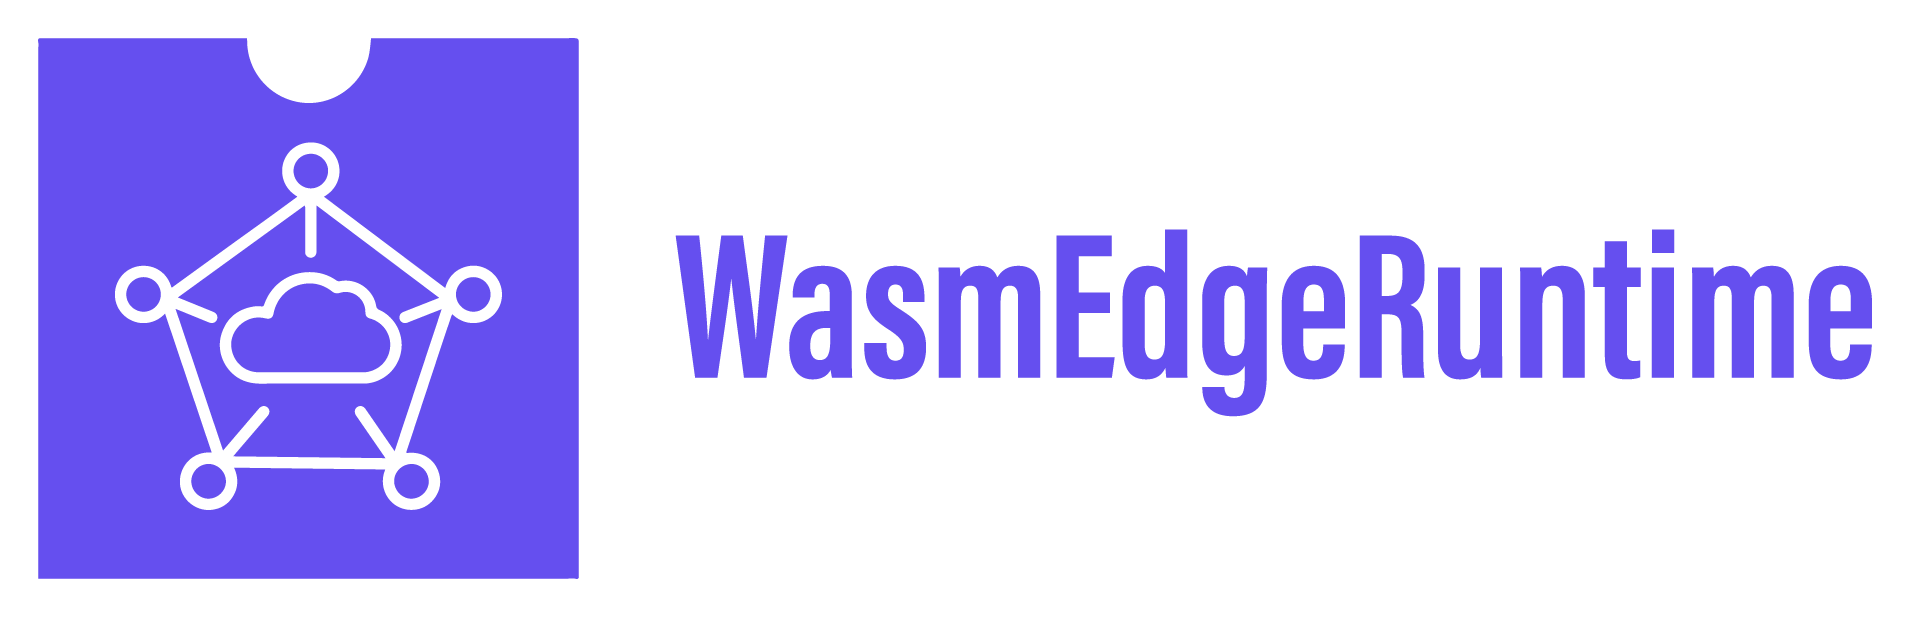 wasmedge-runtime-logo.png